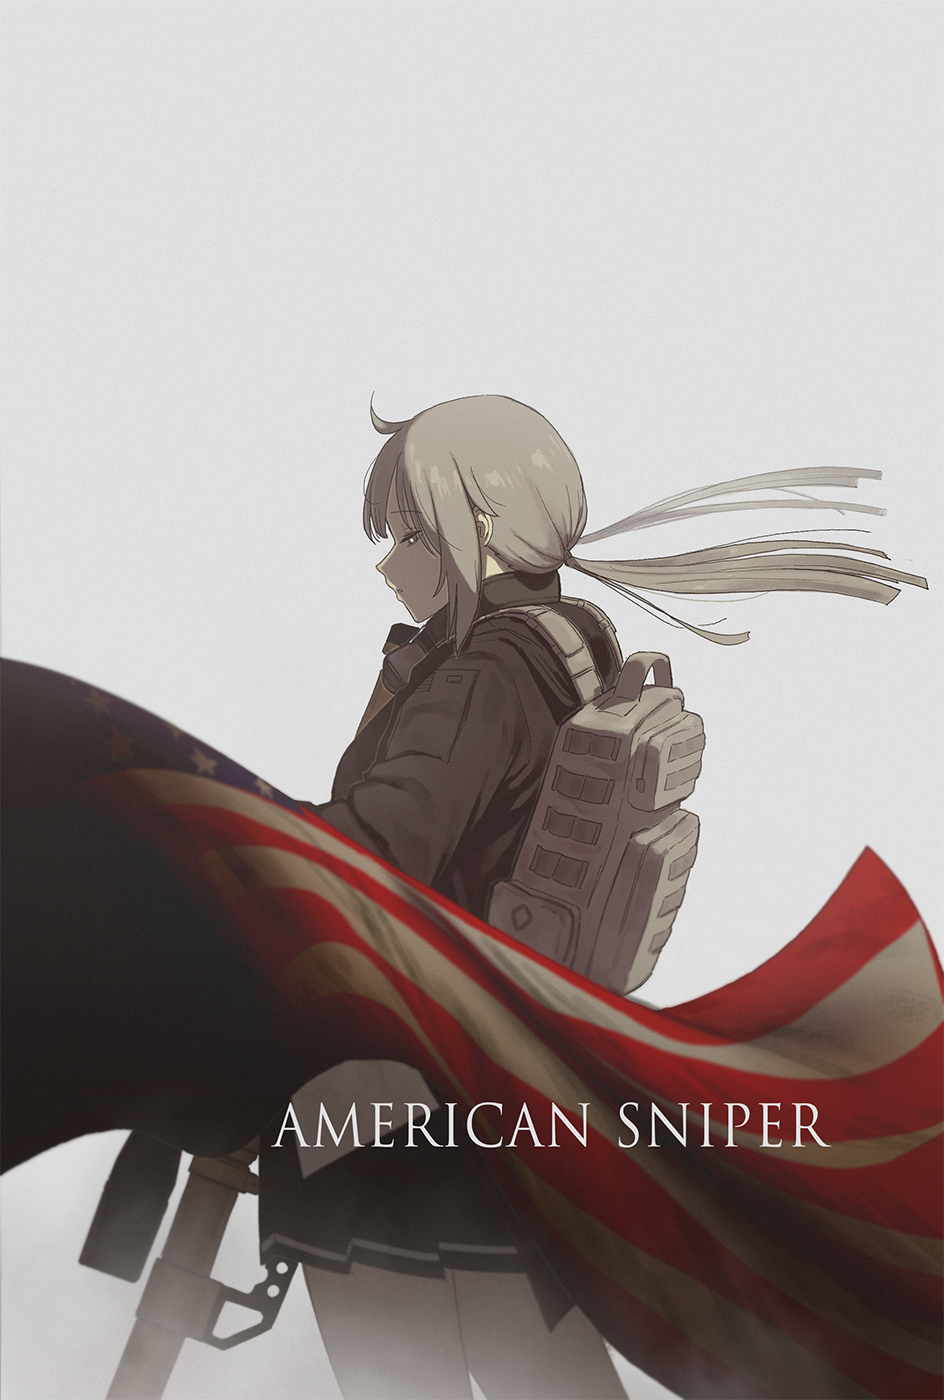 1girl ahoge american_flag anti-materiel_rifle backpack bag bangs black_skirt bolt_action brown_jacket cheytac_m200 cowboy_shot english_text flag from_side girls_frontline gun hair_blowing headphones headphones_around_neck headset highres huqu jacket low_ponytail m200_(girls_frontline) movie_poster movie_reference pleated_skirt rifle scope sidelocks silver_hair skirt sniper_rifle solo weapon white_background